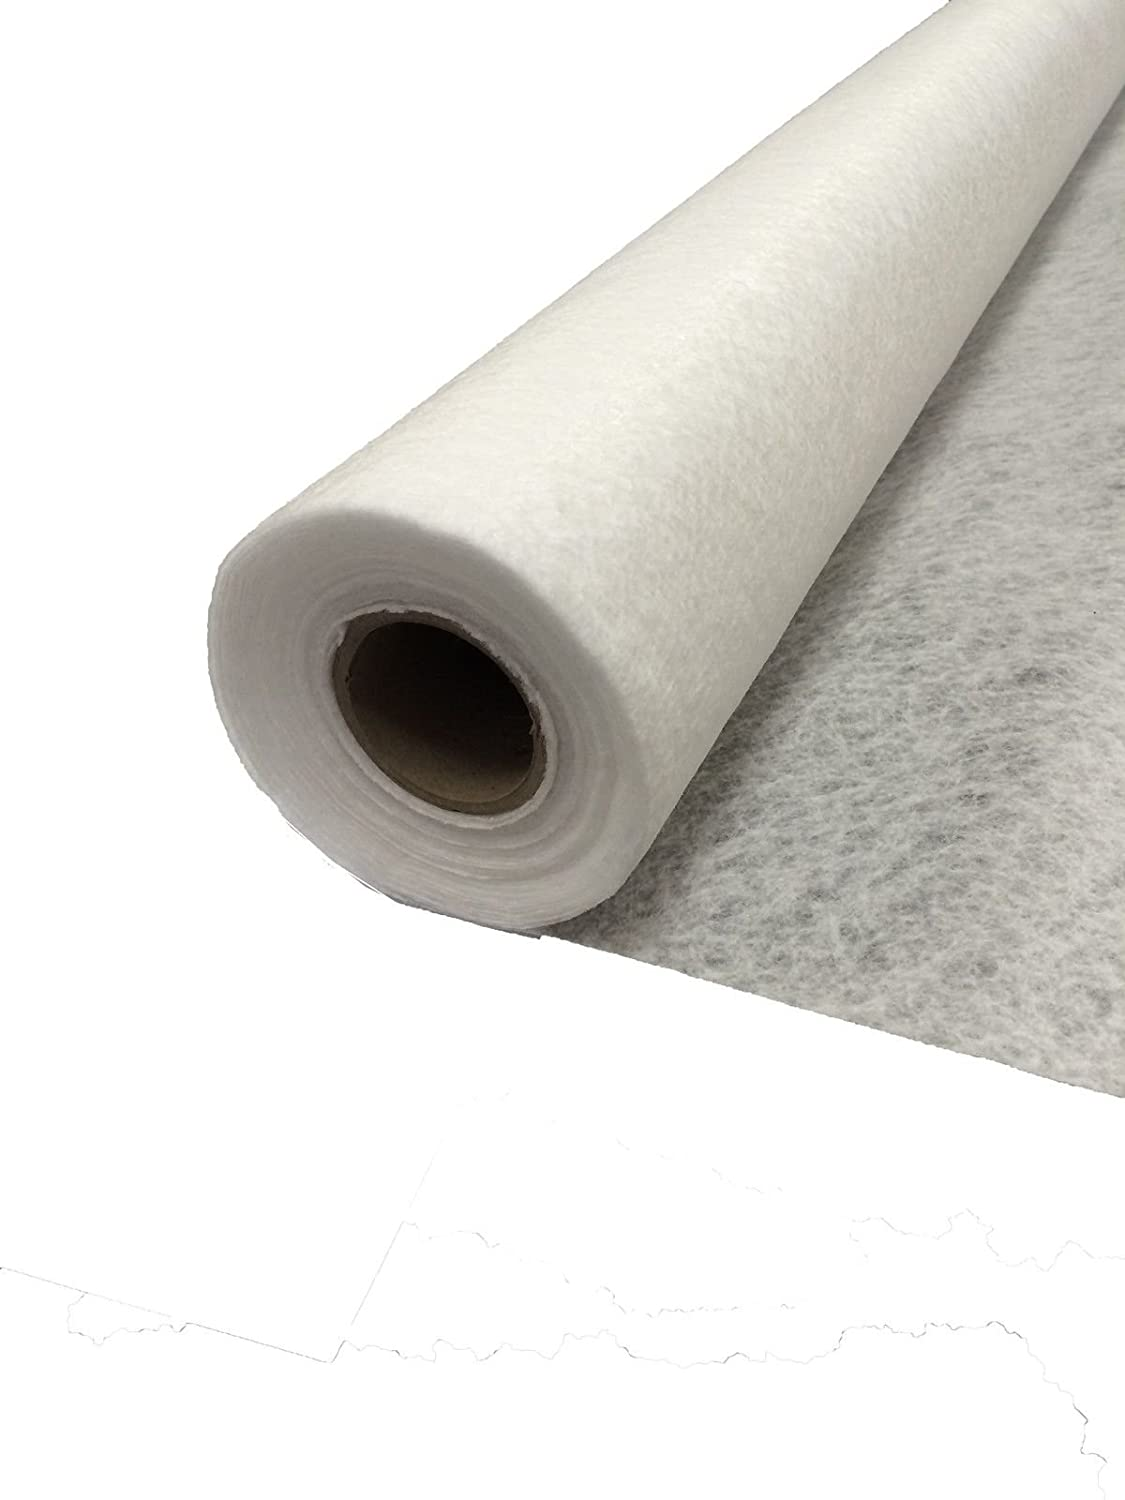 20 m2 GeoTextile Membrane Fleece Non-Woven Fabric - 2.25x8.88m Cut Roll - Weed Prevention - Soakaways Spudulica